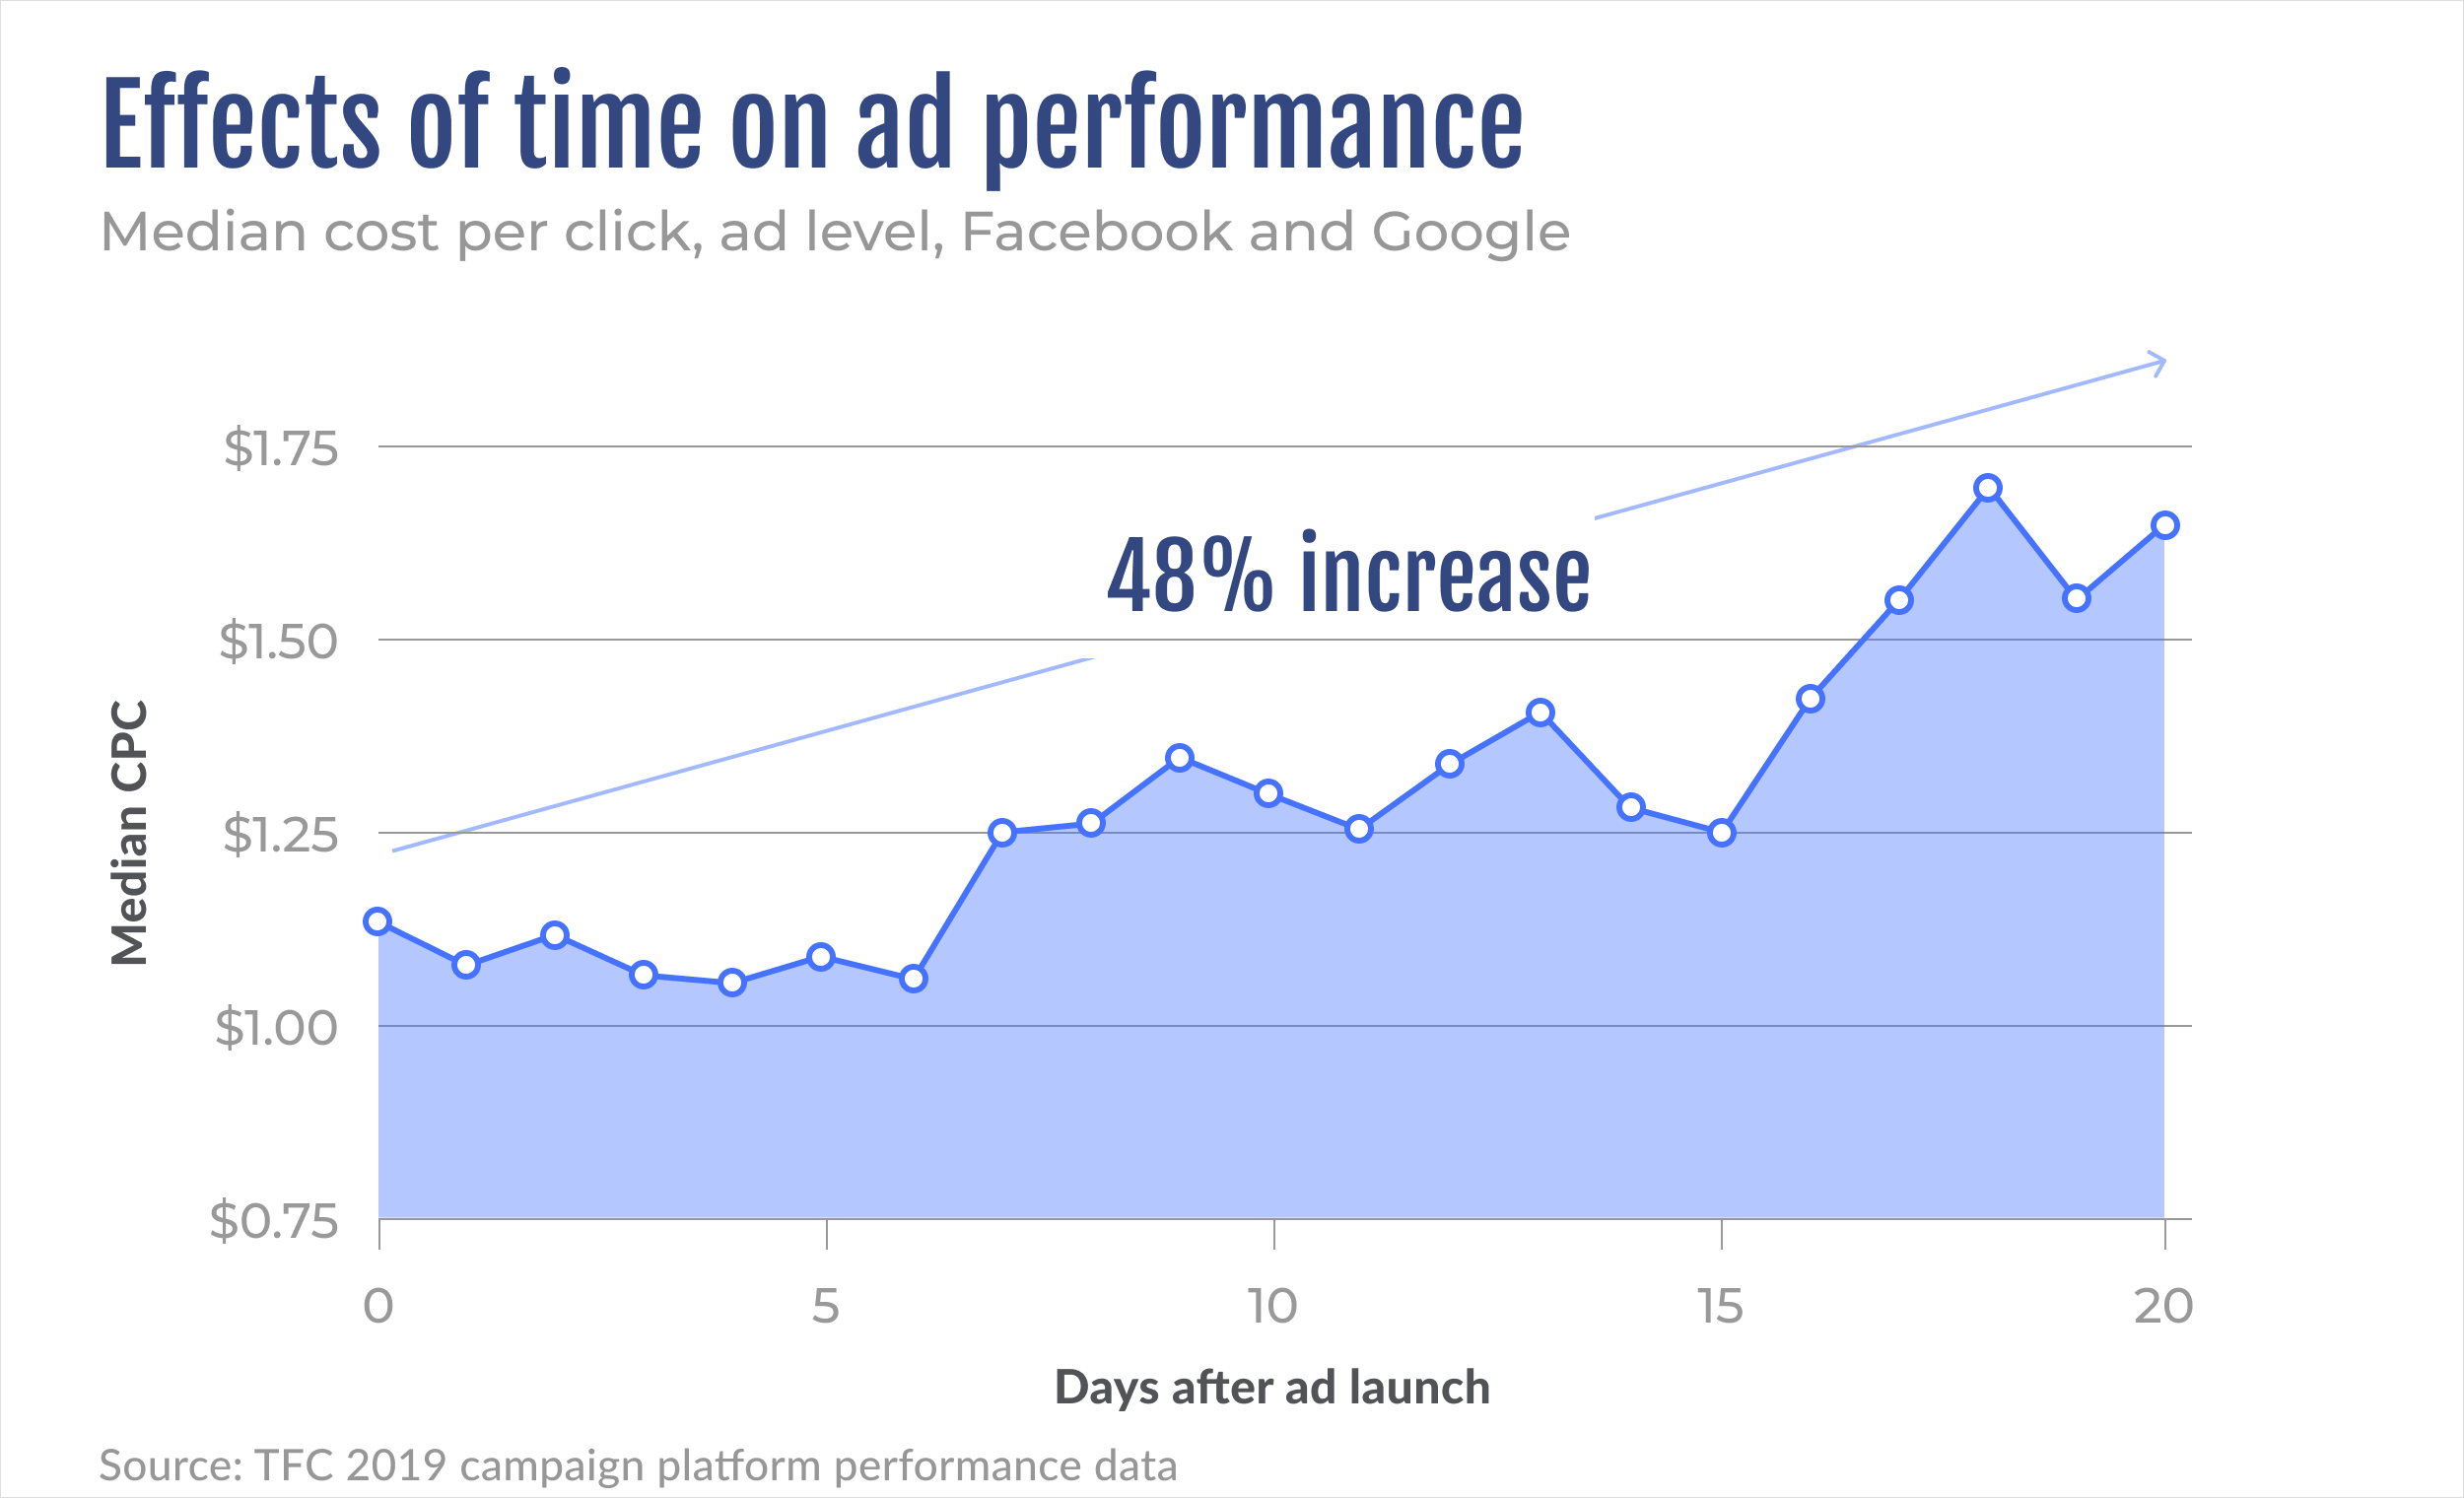 Median cost per click across Facebook and Google increases over time